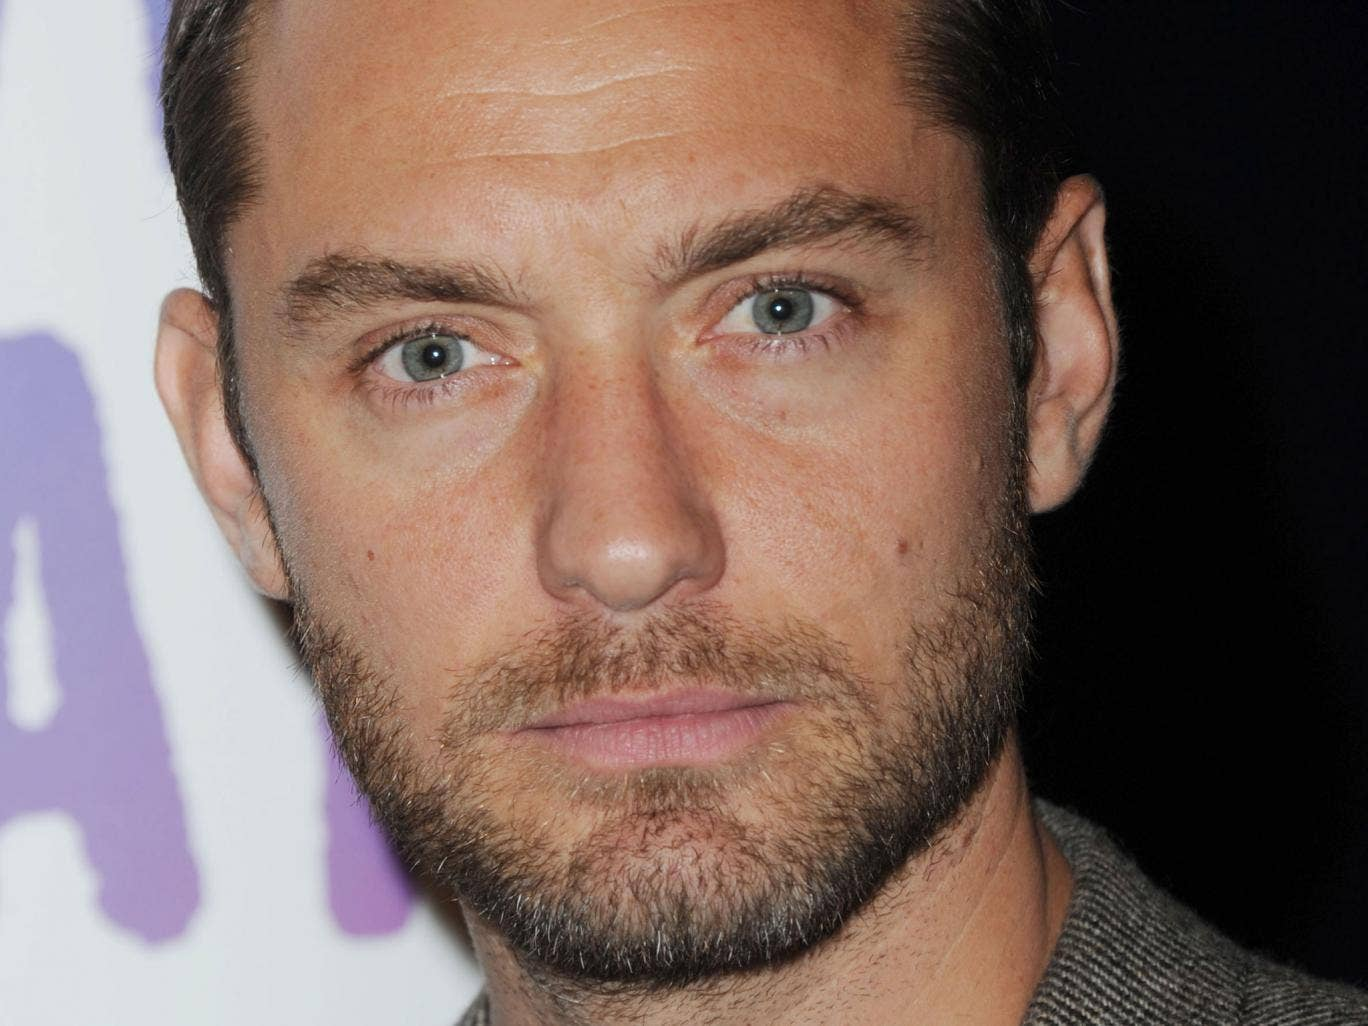 Who knew? Jude Law's nose has been in high demand for men wanting surgery